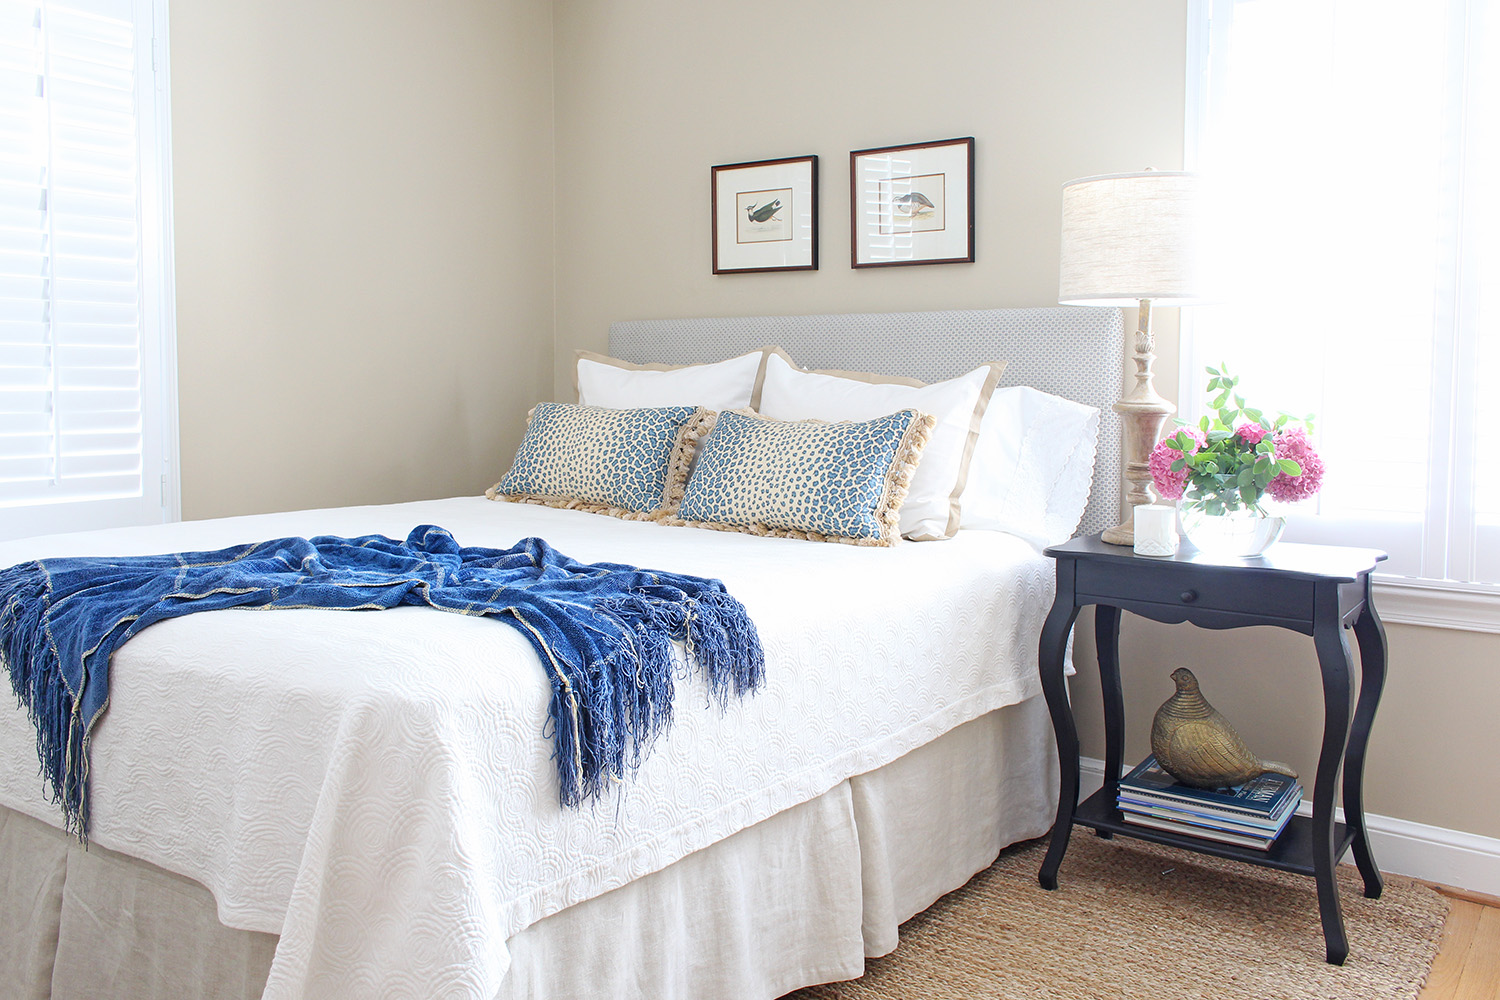 A traditional guest room gets a new look with a custom DIY upholstered headboard along with some other pieces from around the house.